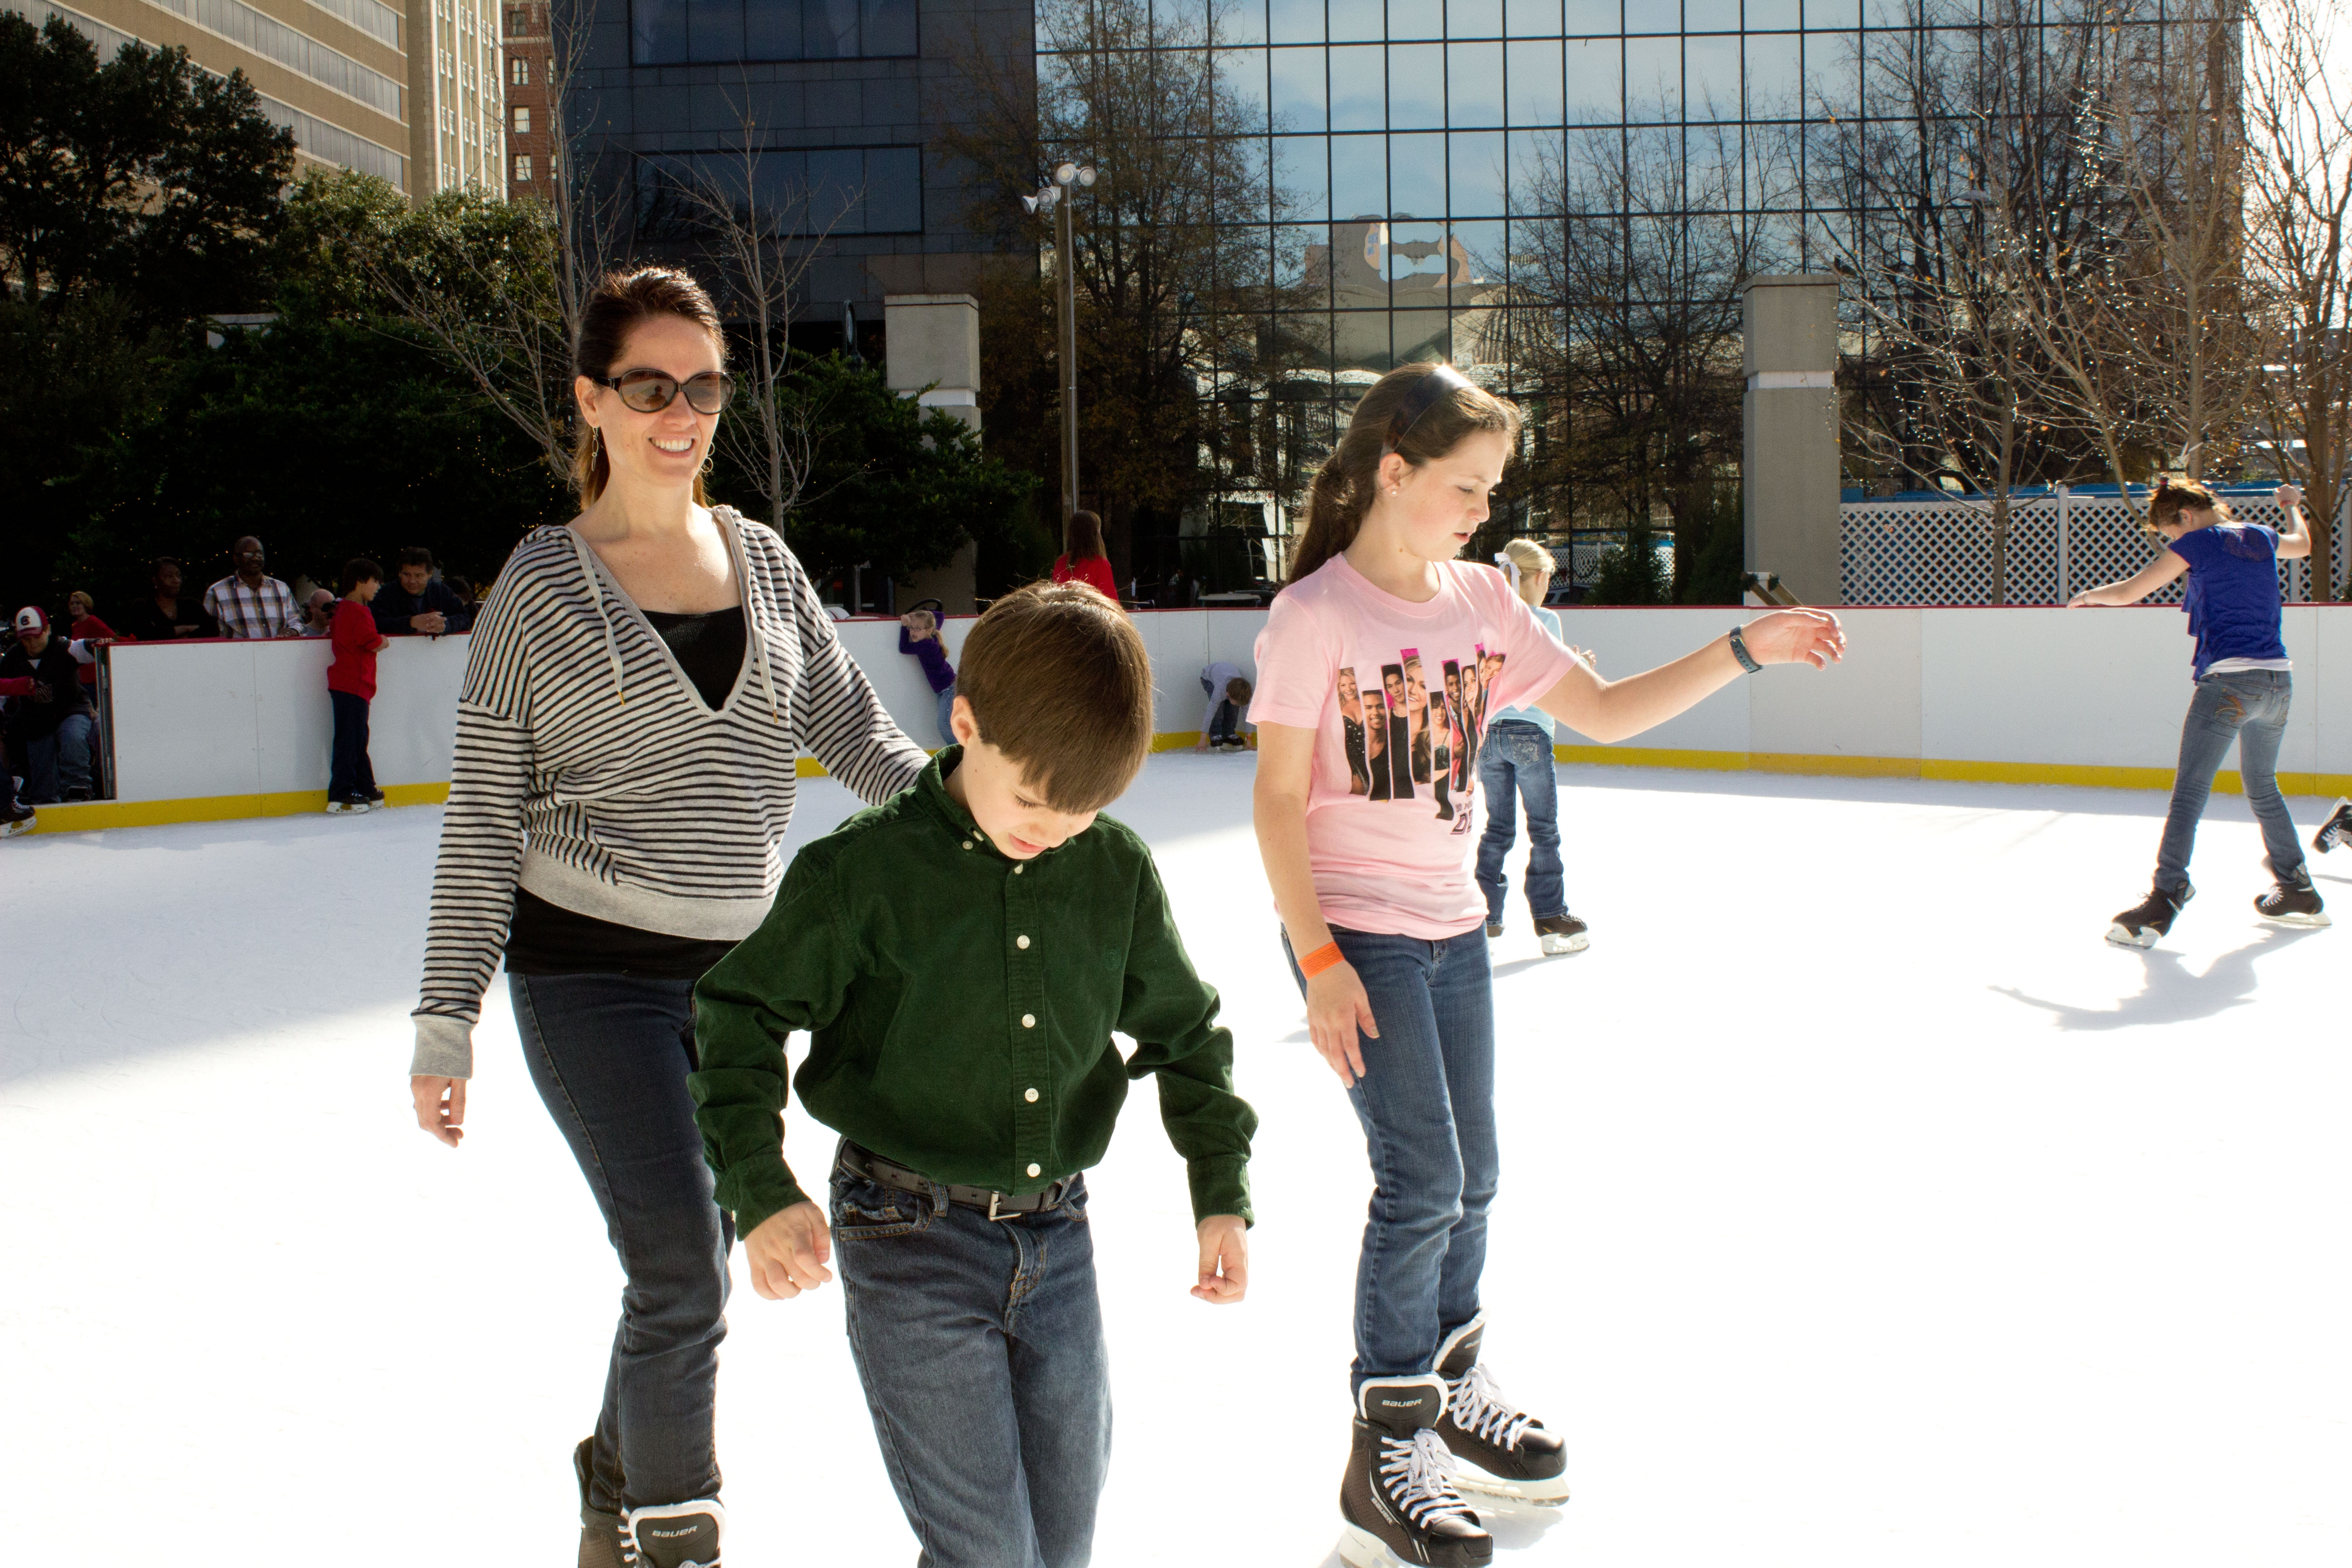 Outdoor skating at Main Street Ice on Boyd Plaza in Columbia, SC